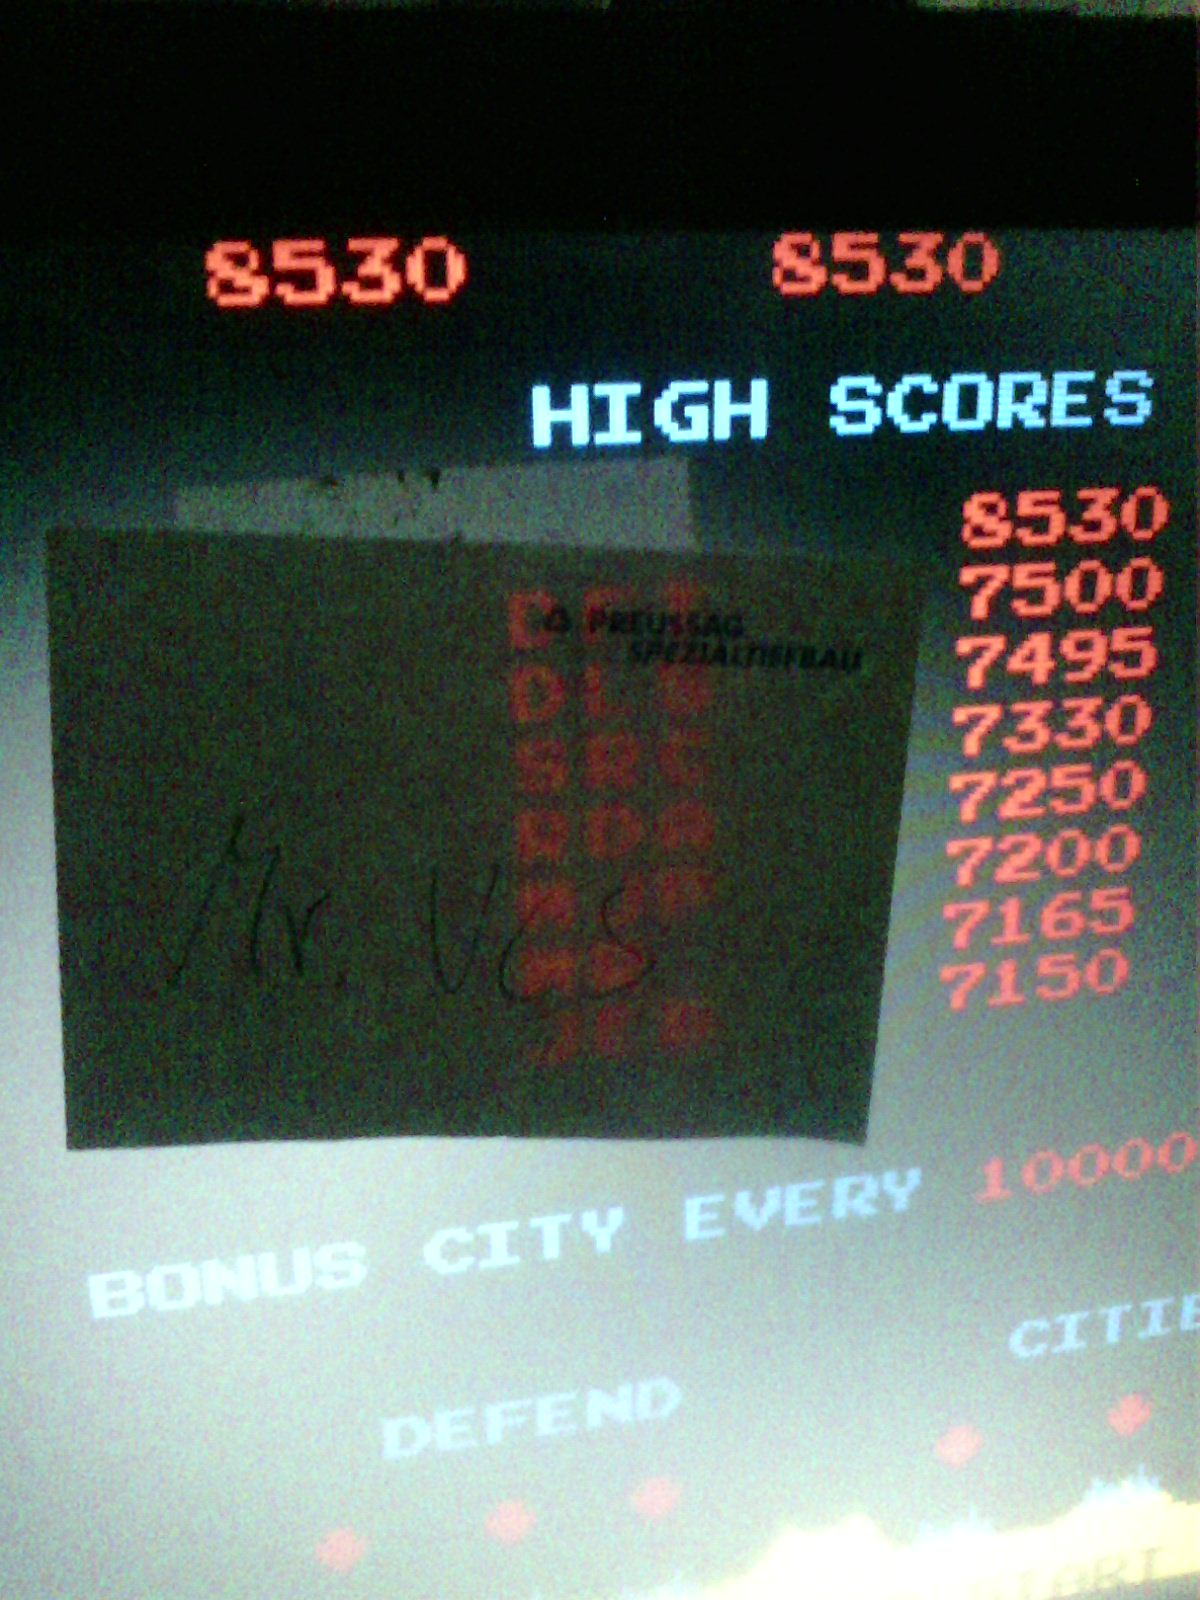 Missile Command [missile] 8,530 points